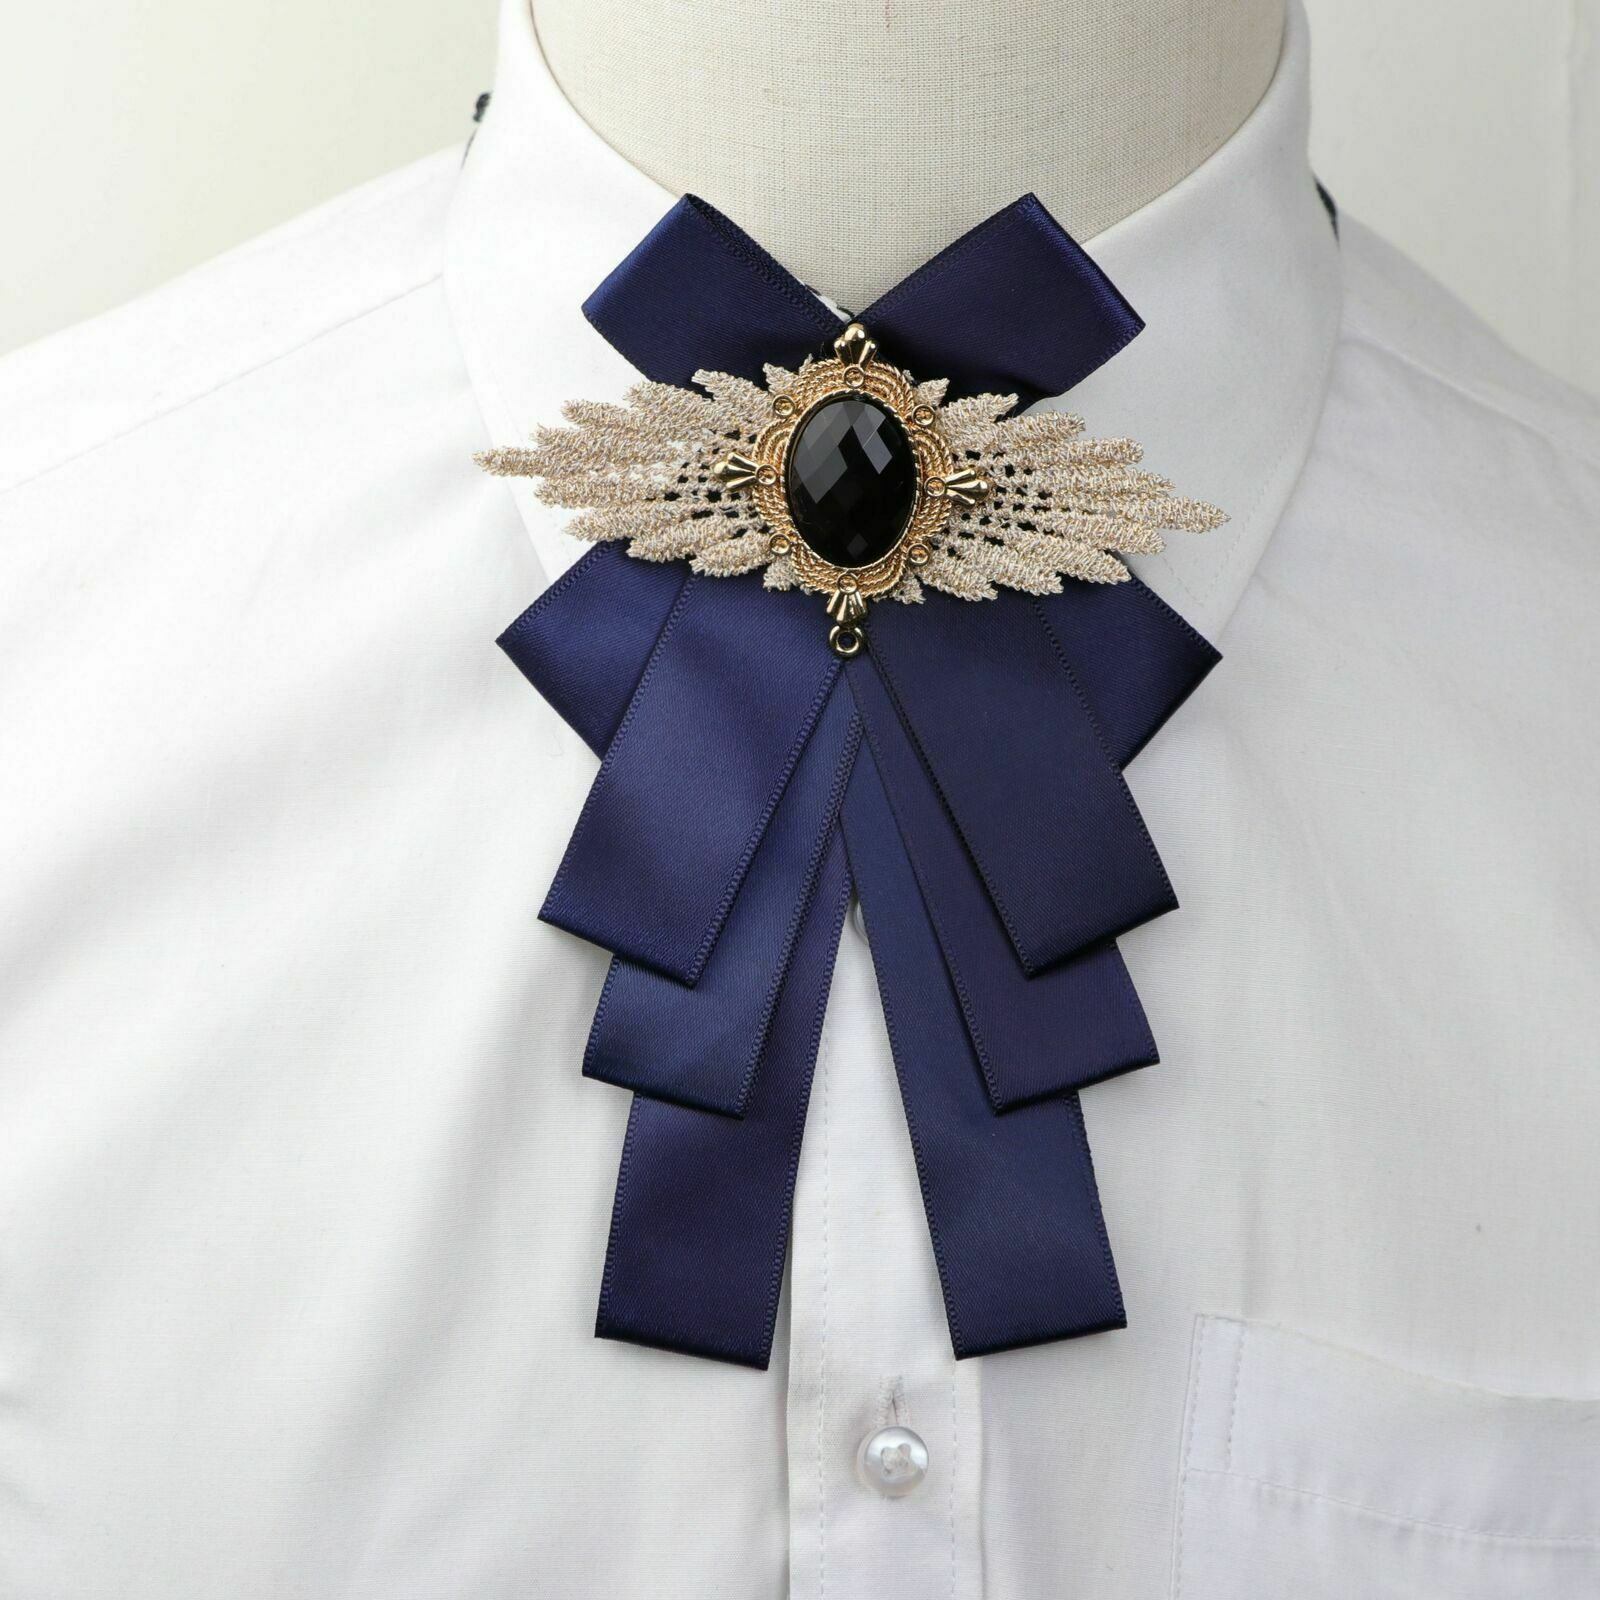 Fashion New Woman Big Bowtie Pretty Ribbon Solid Color Butterfly Bowknot Bow Tie